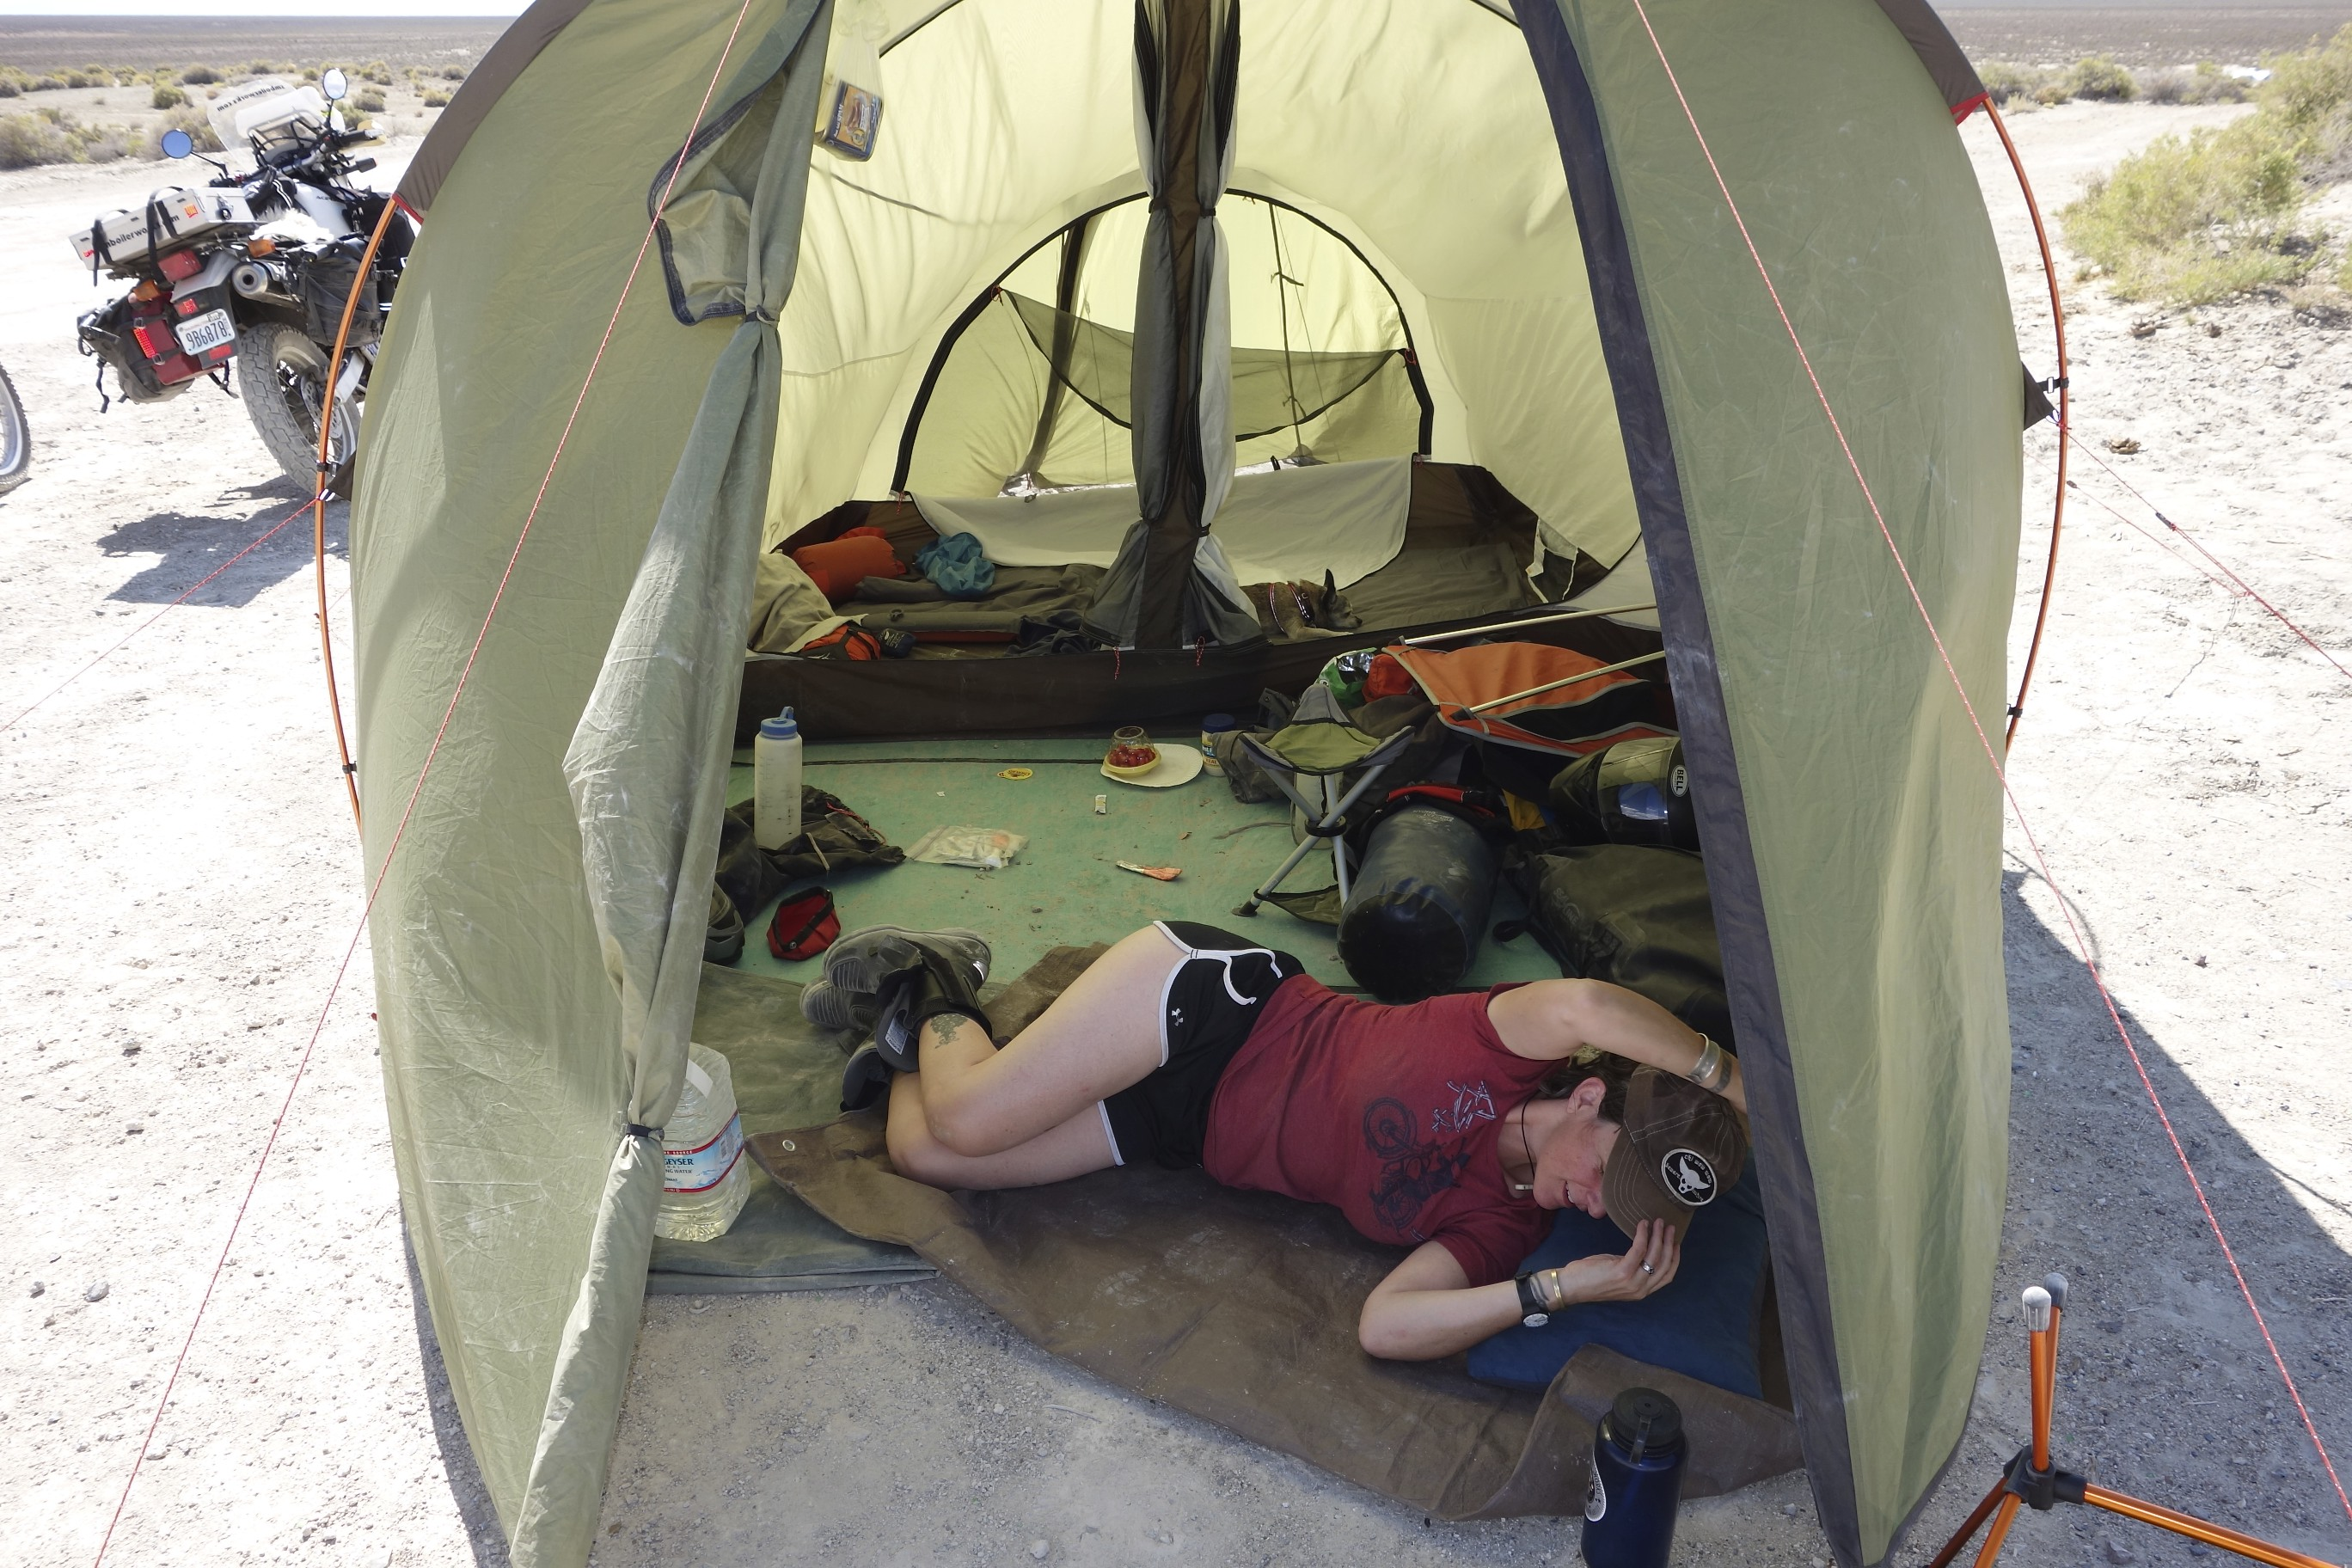 Heat wind and exhaustion create utter chaos in the tent. & Overland by motorcycle u2013 6 months and a new paradigm u2013 Su0026M Boiler ...